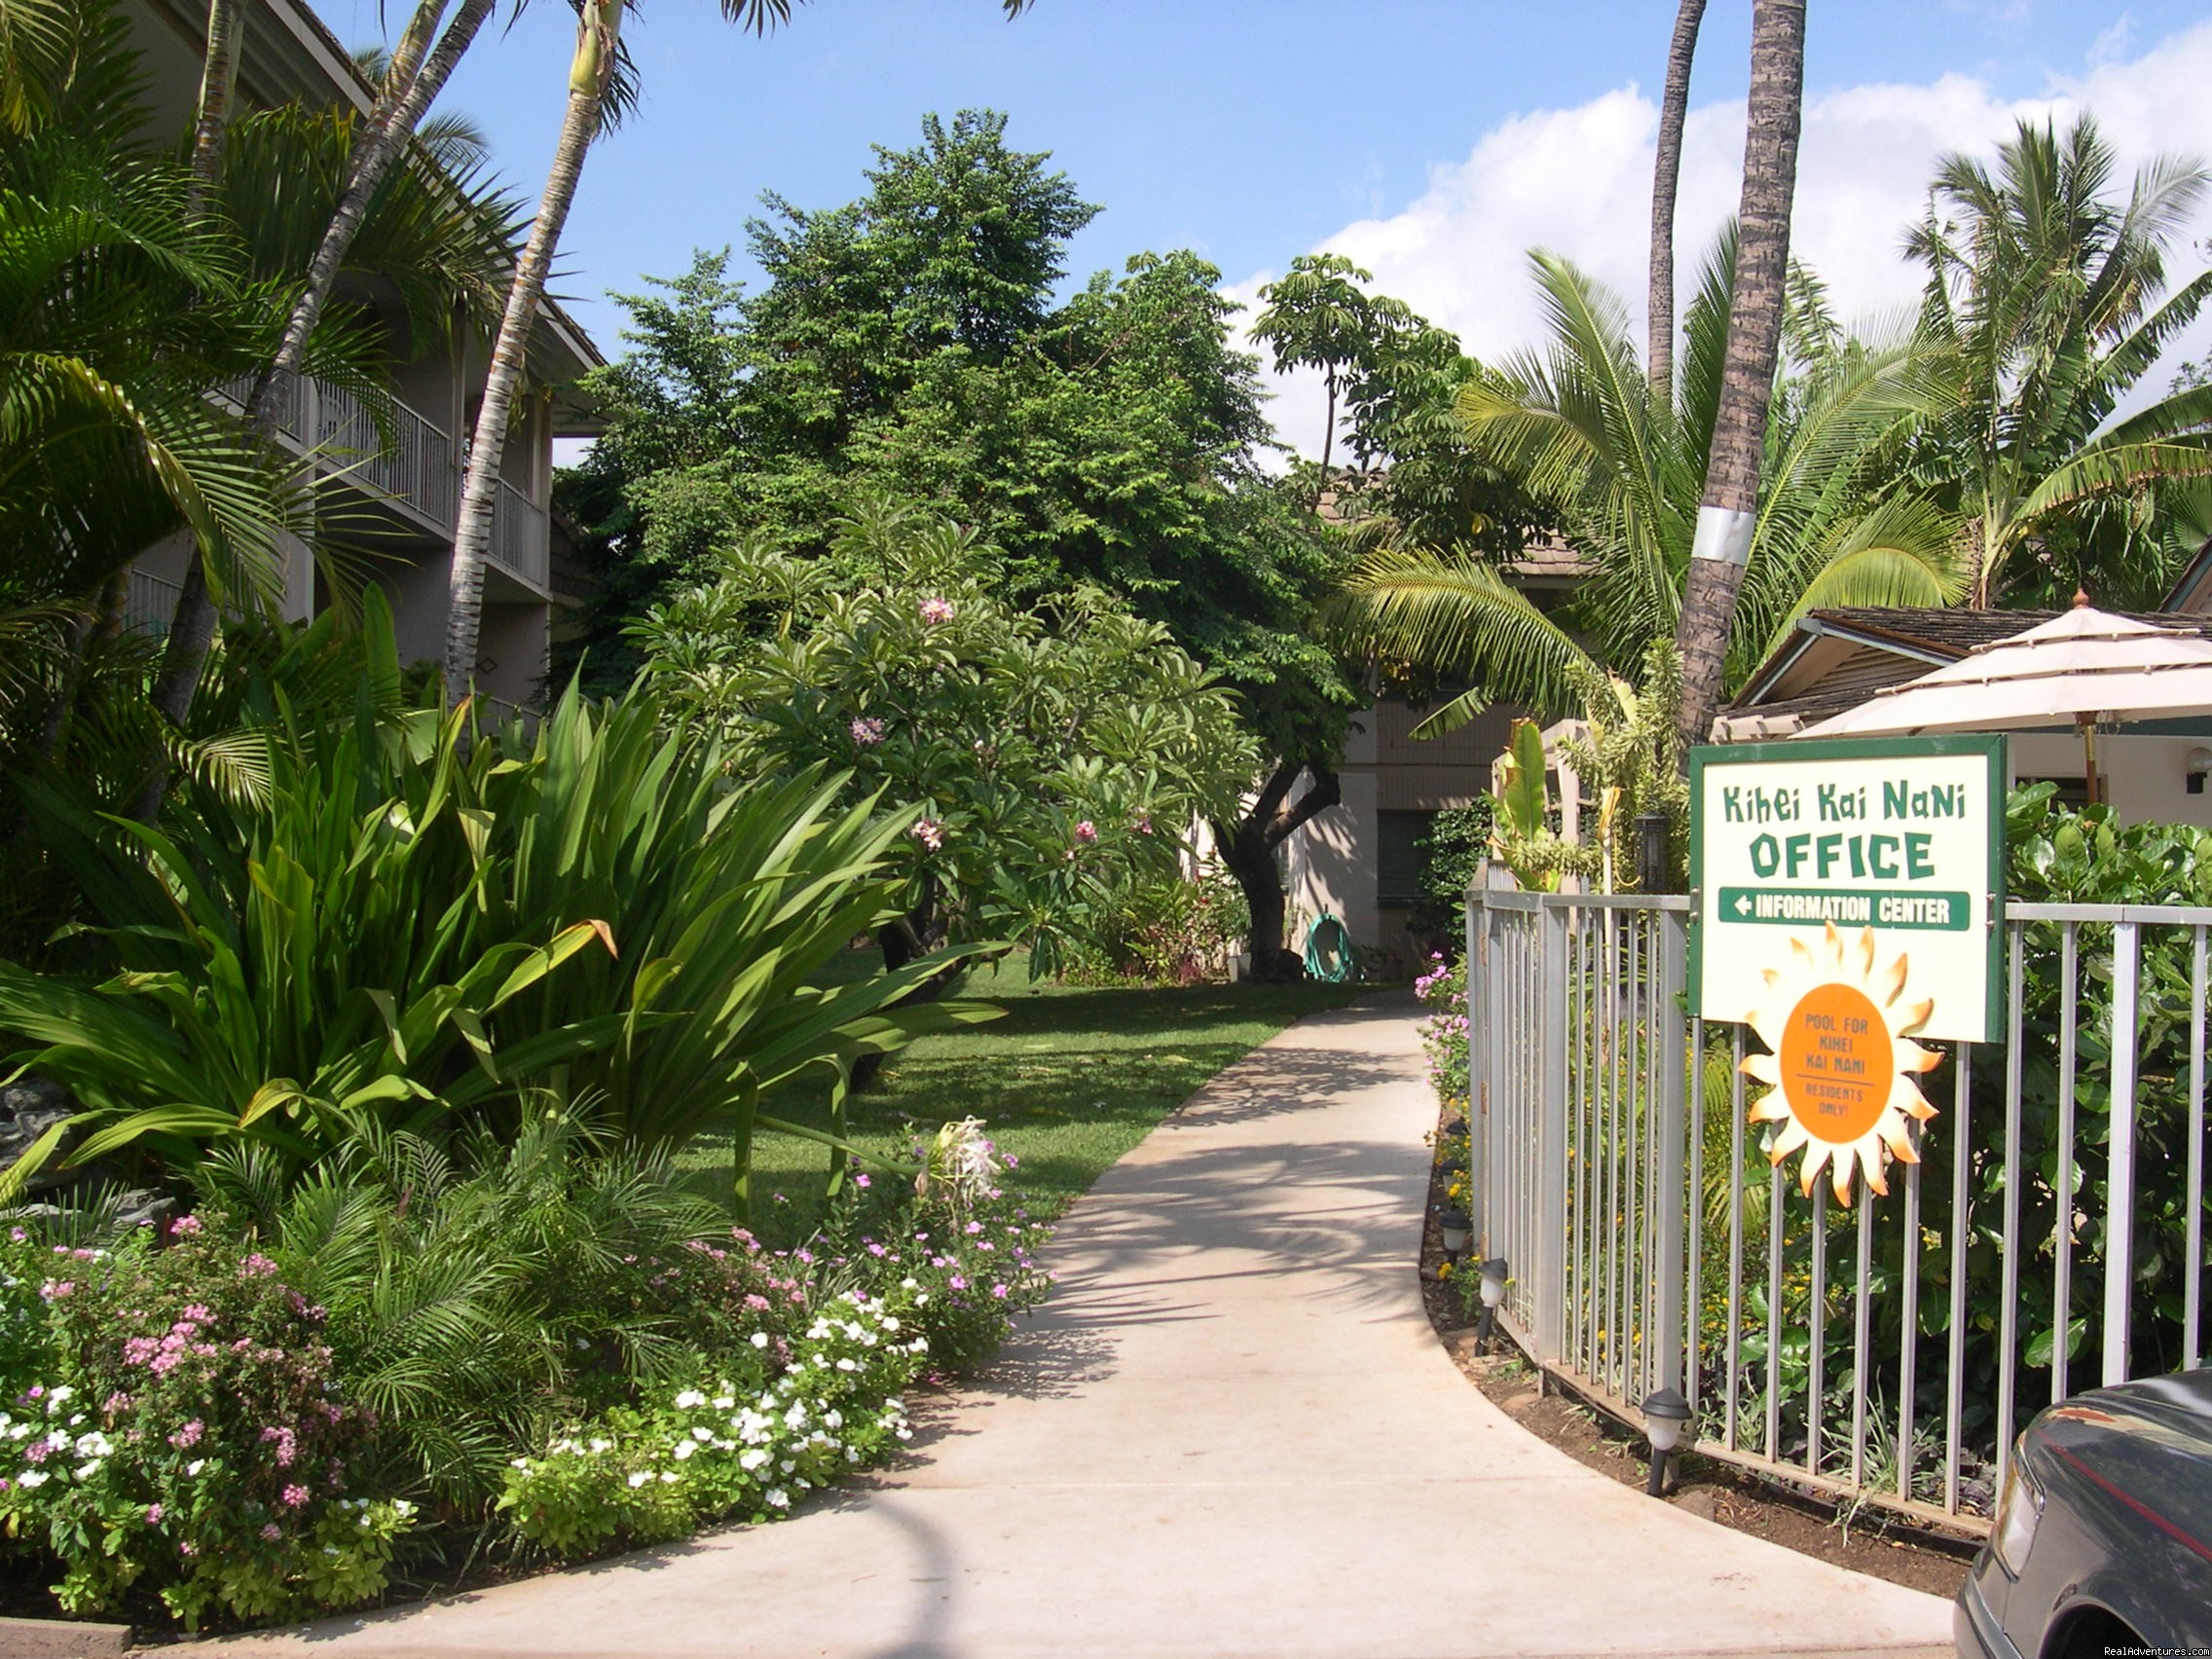 Tropical trees and flowers abound | Image #13/13 | Maui Condo Rental by Beach from $80nt -Kihei Maui